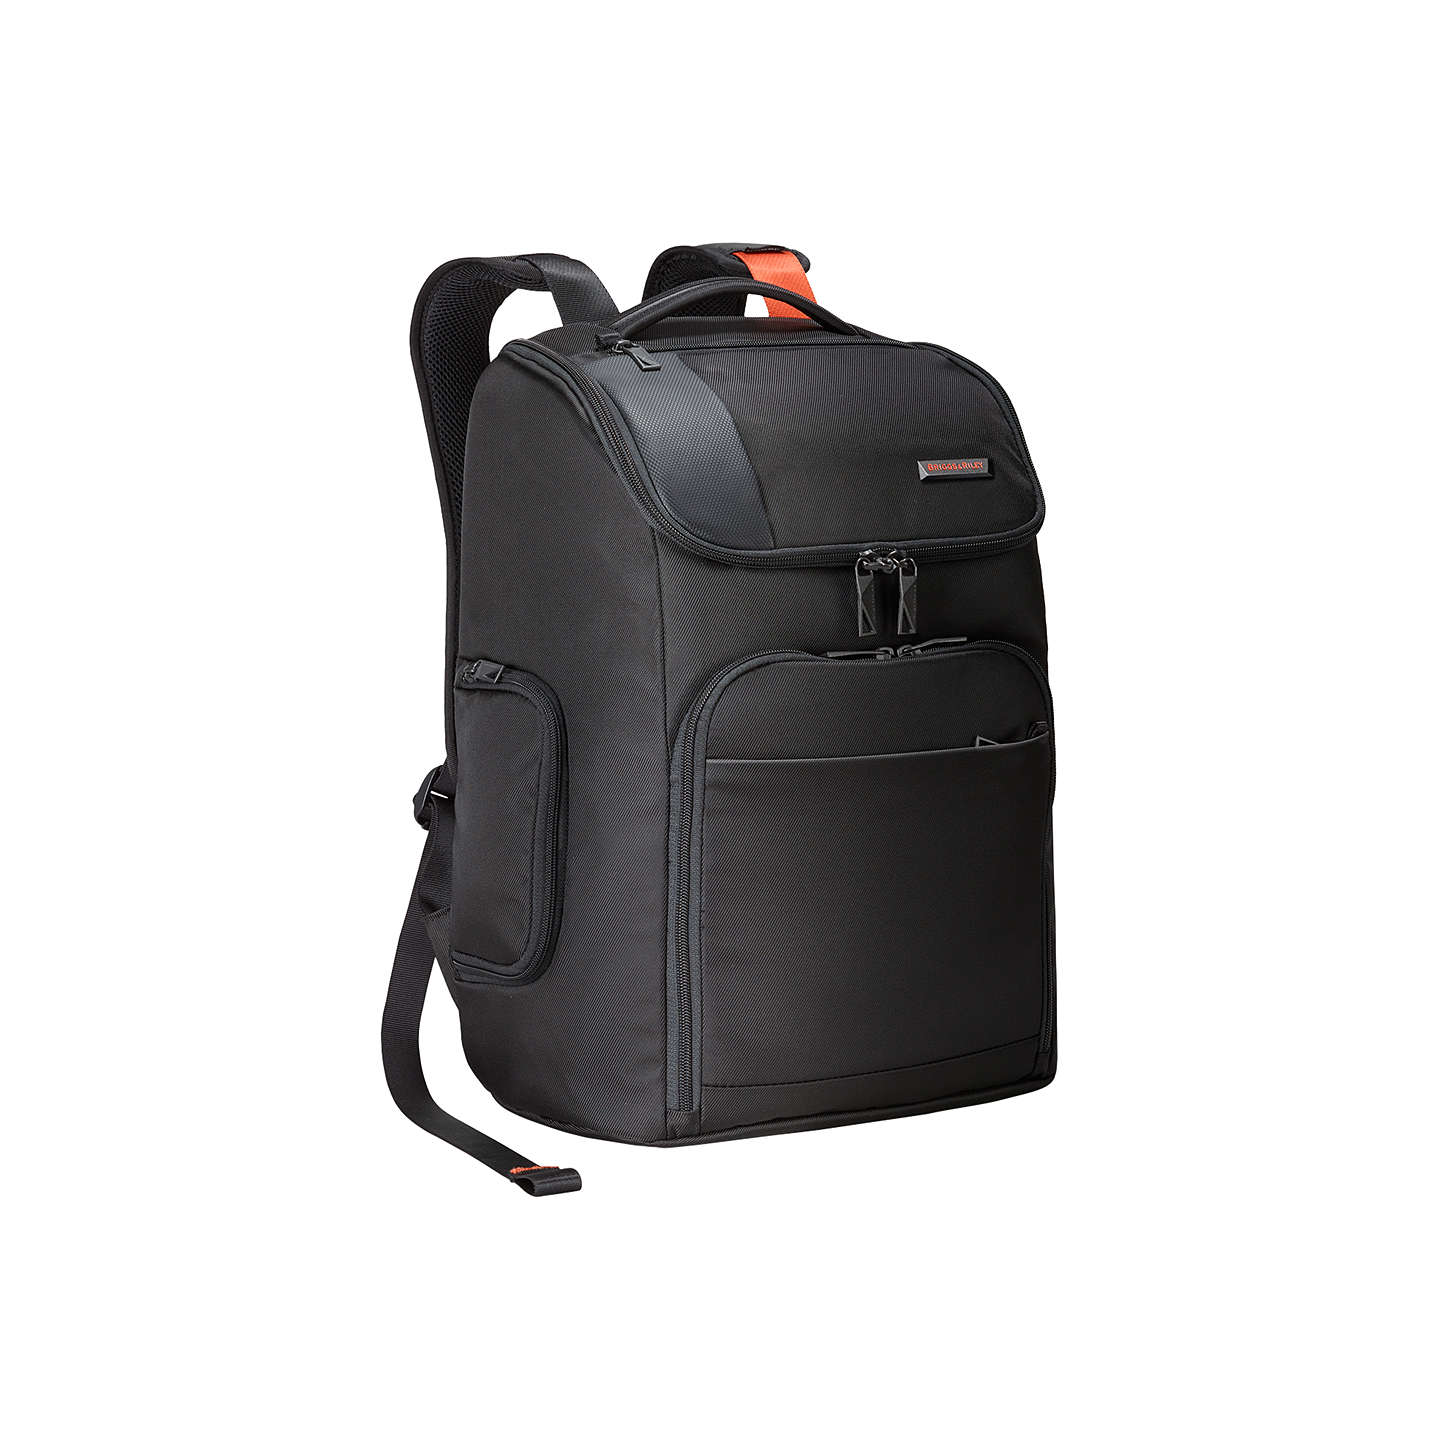 BuyBriggs & Riley Verb Advance Backpack, Black Online at johnlewis.com